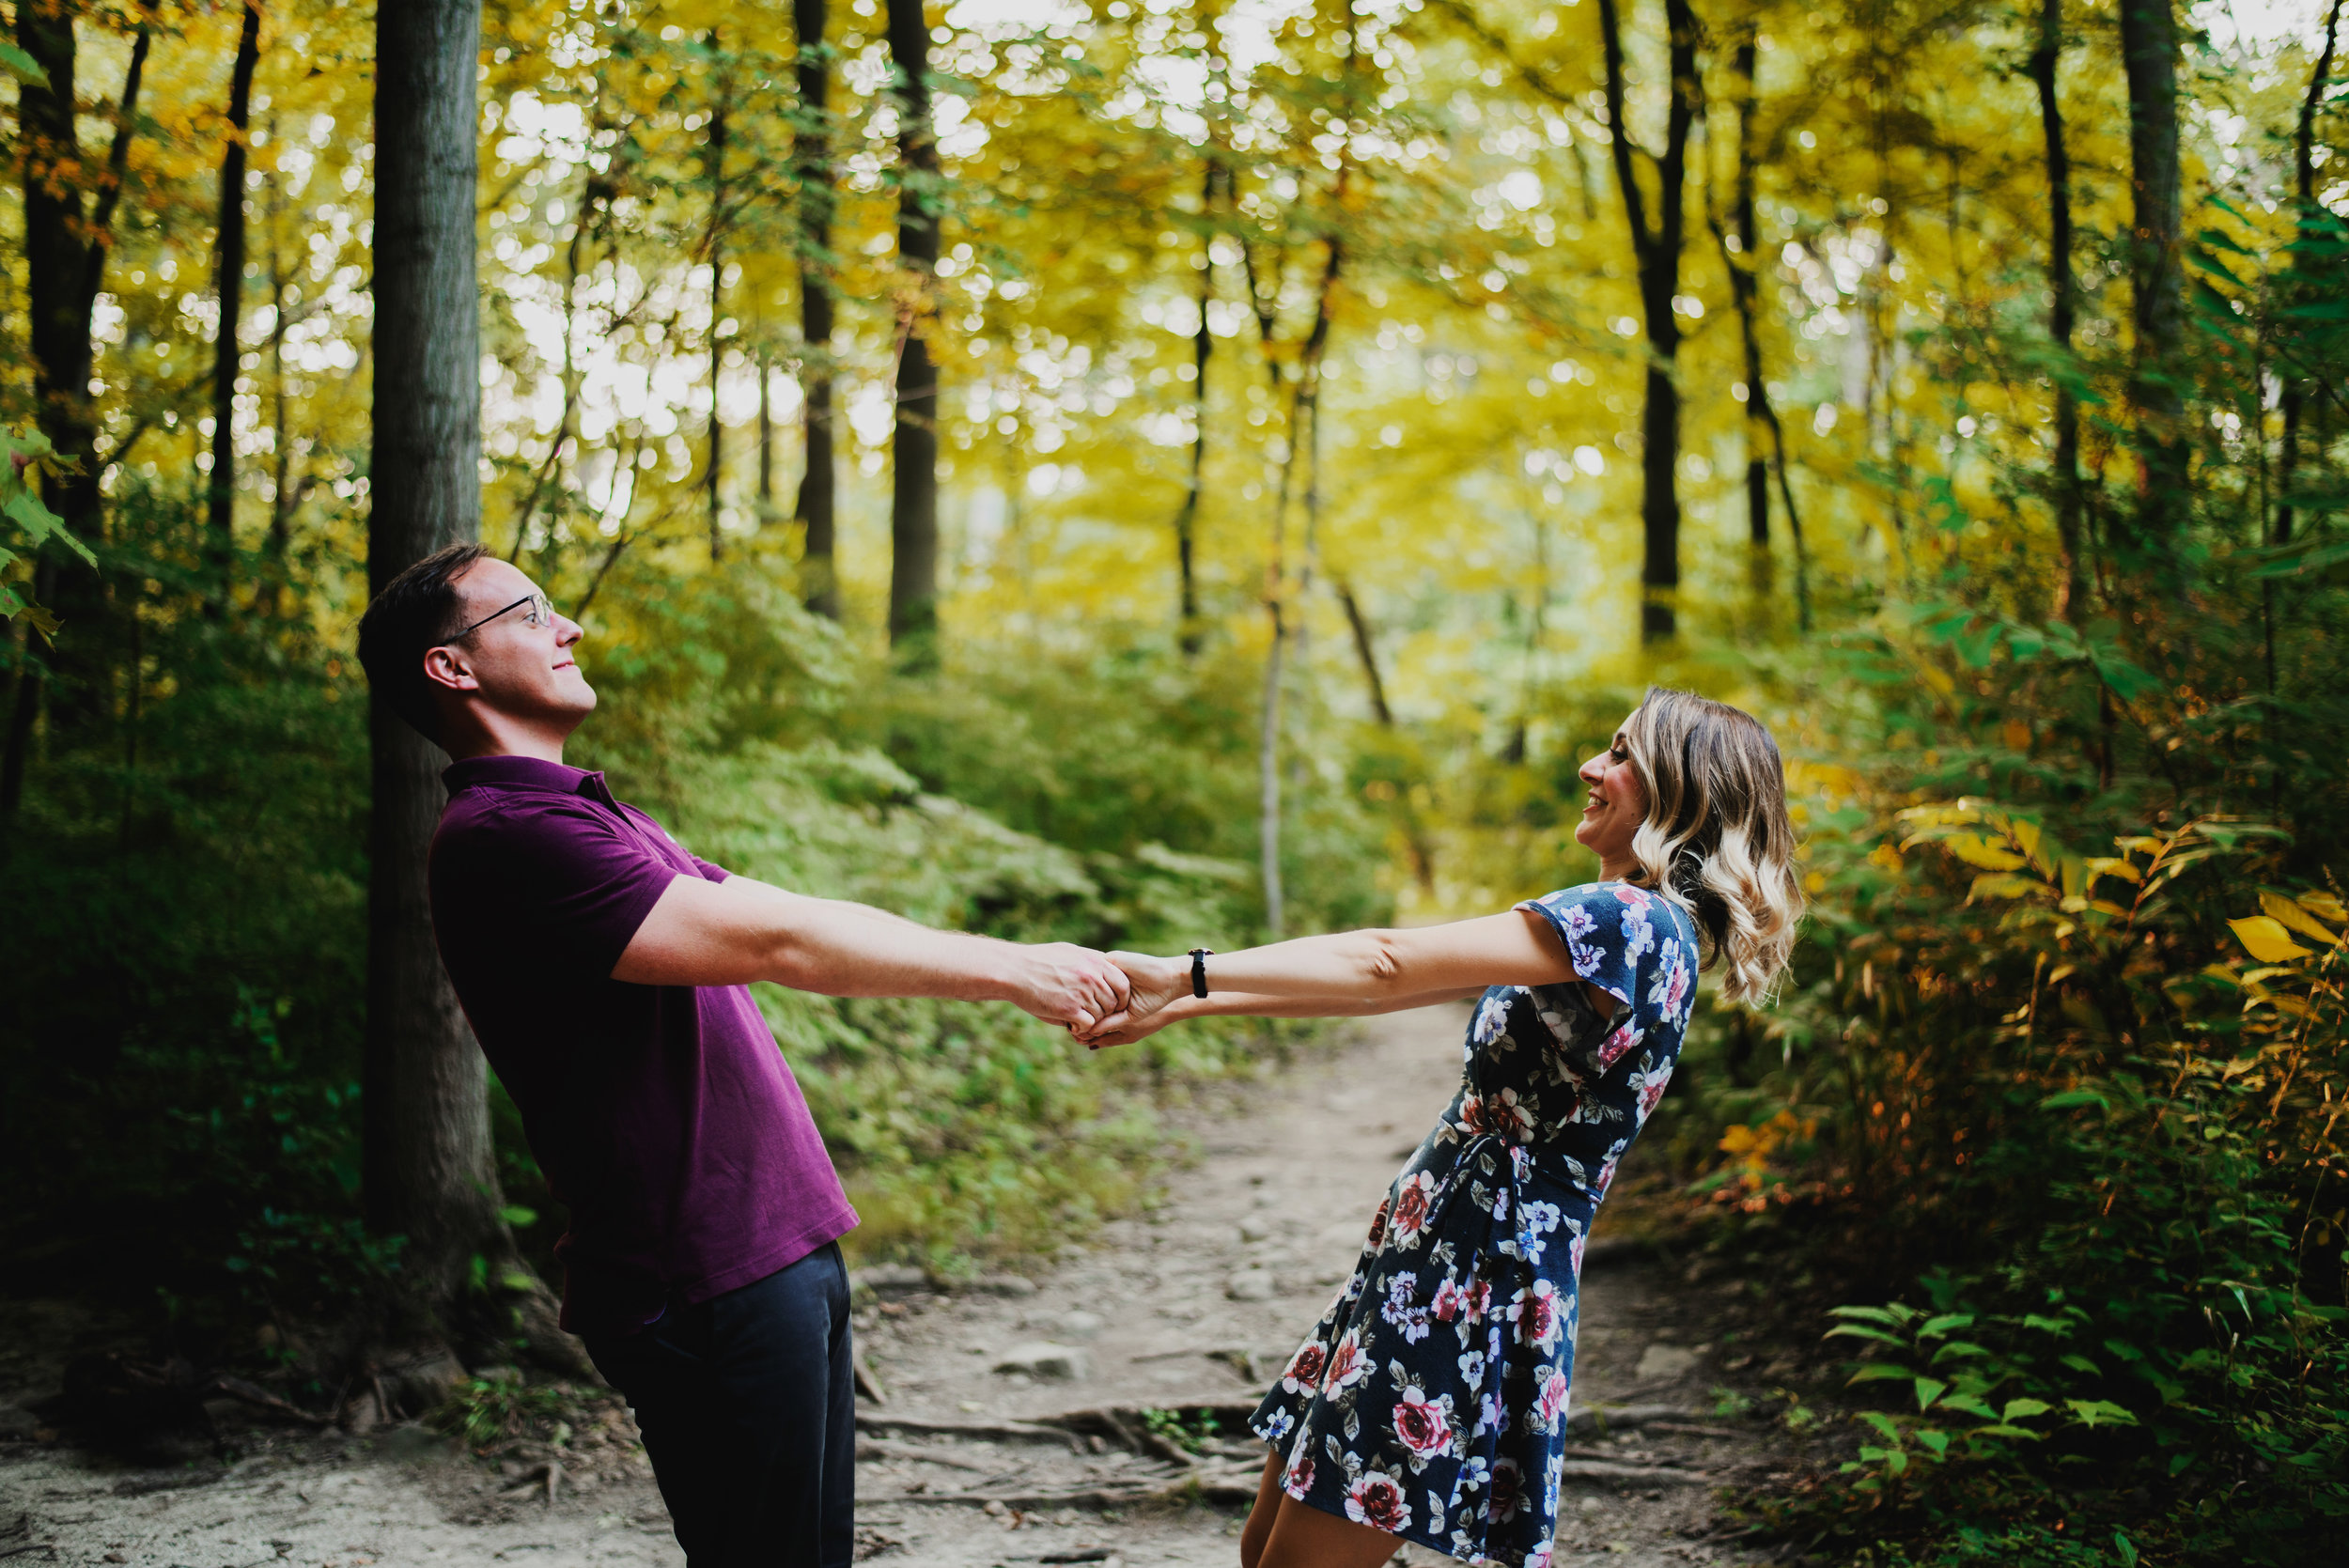 Danielle-Alex-WaterfallGlen-EngagementSession_0888.jpg